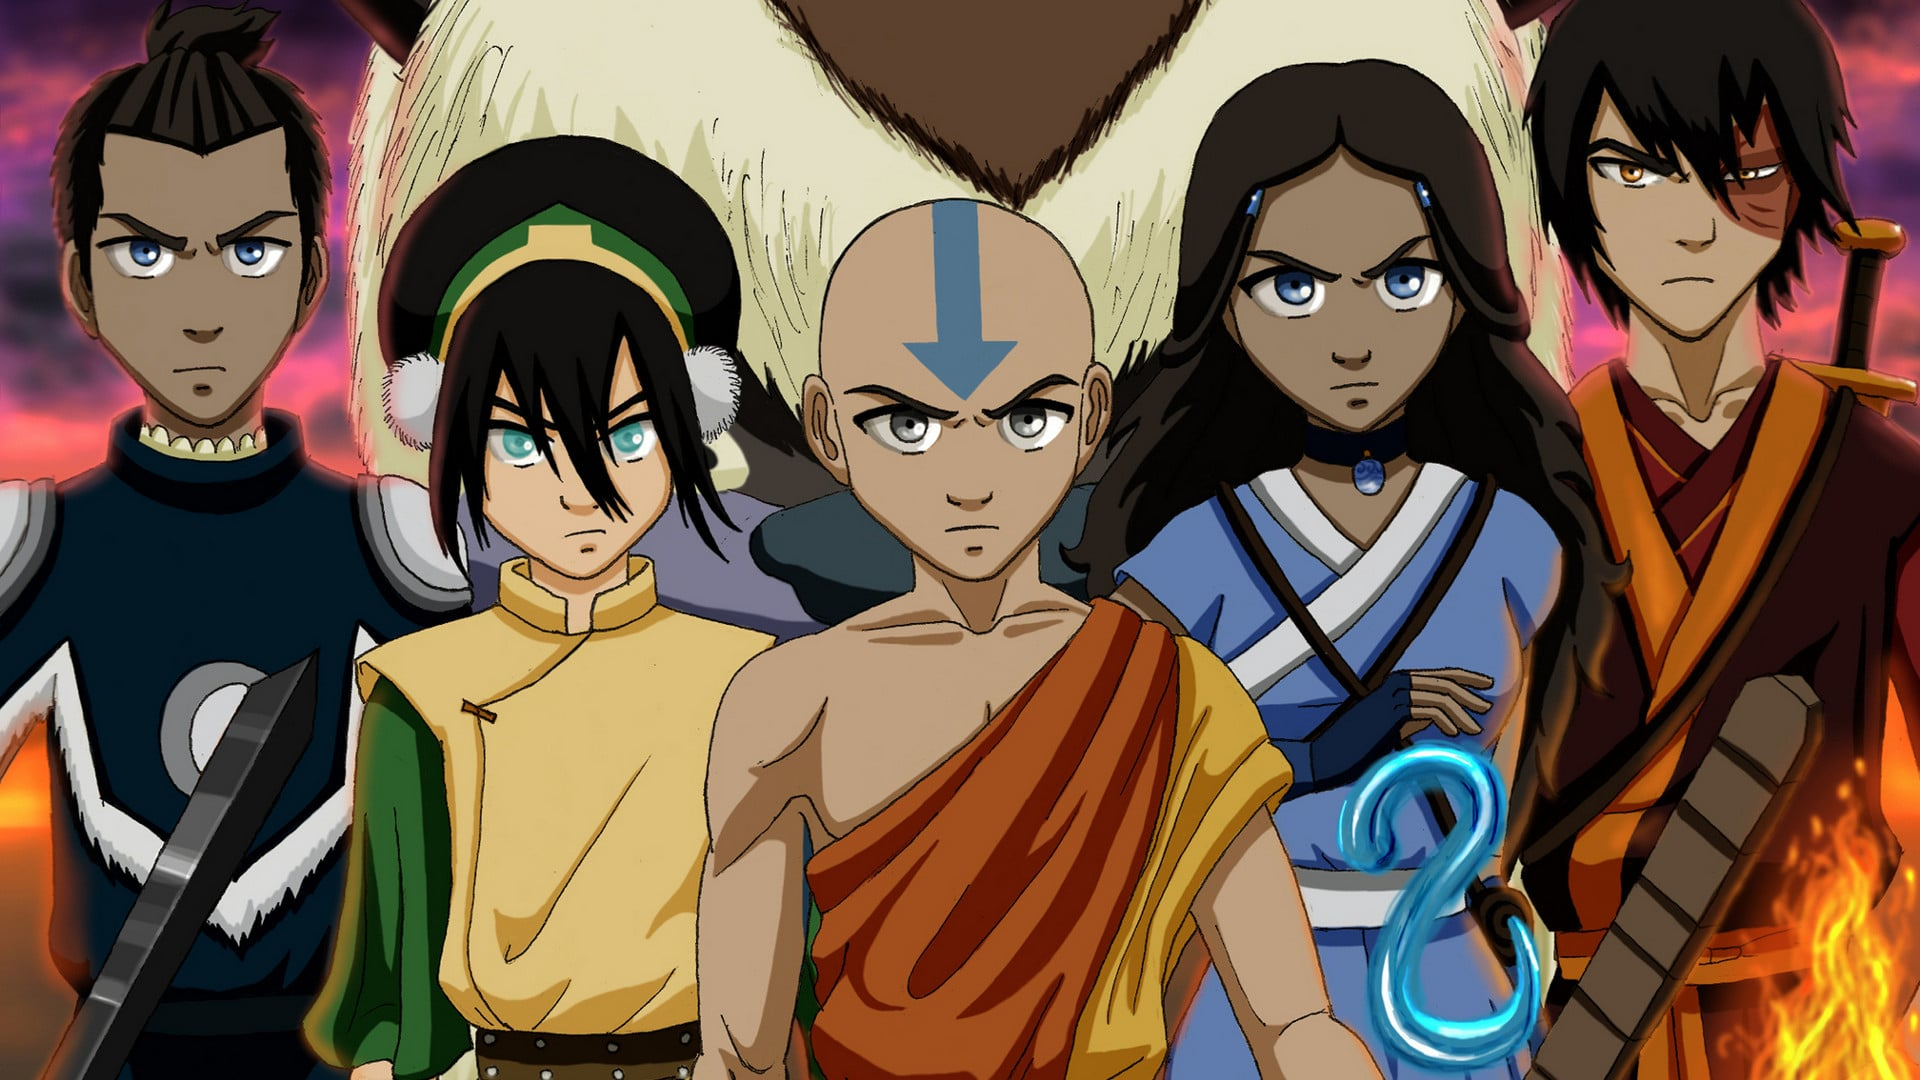 New Avatar The Last Airbender Live Action Series Announced By